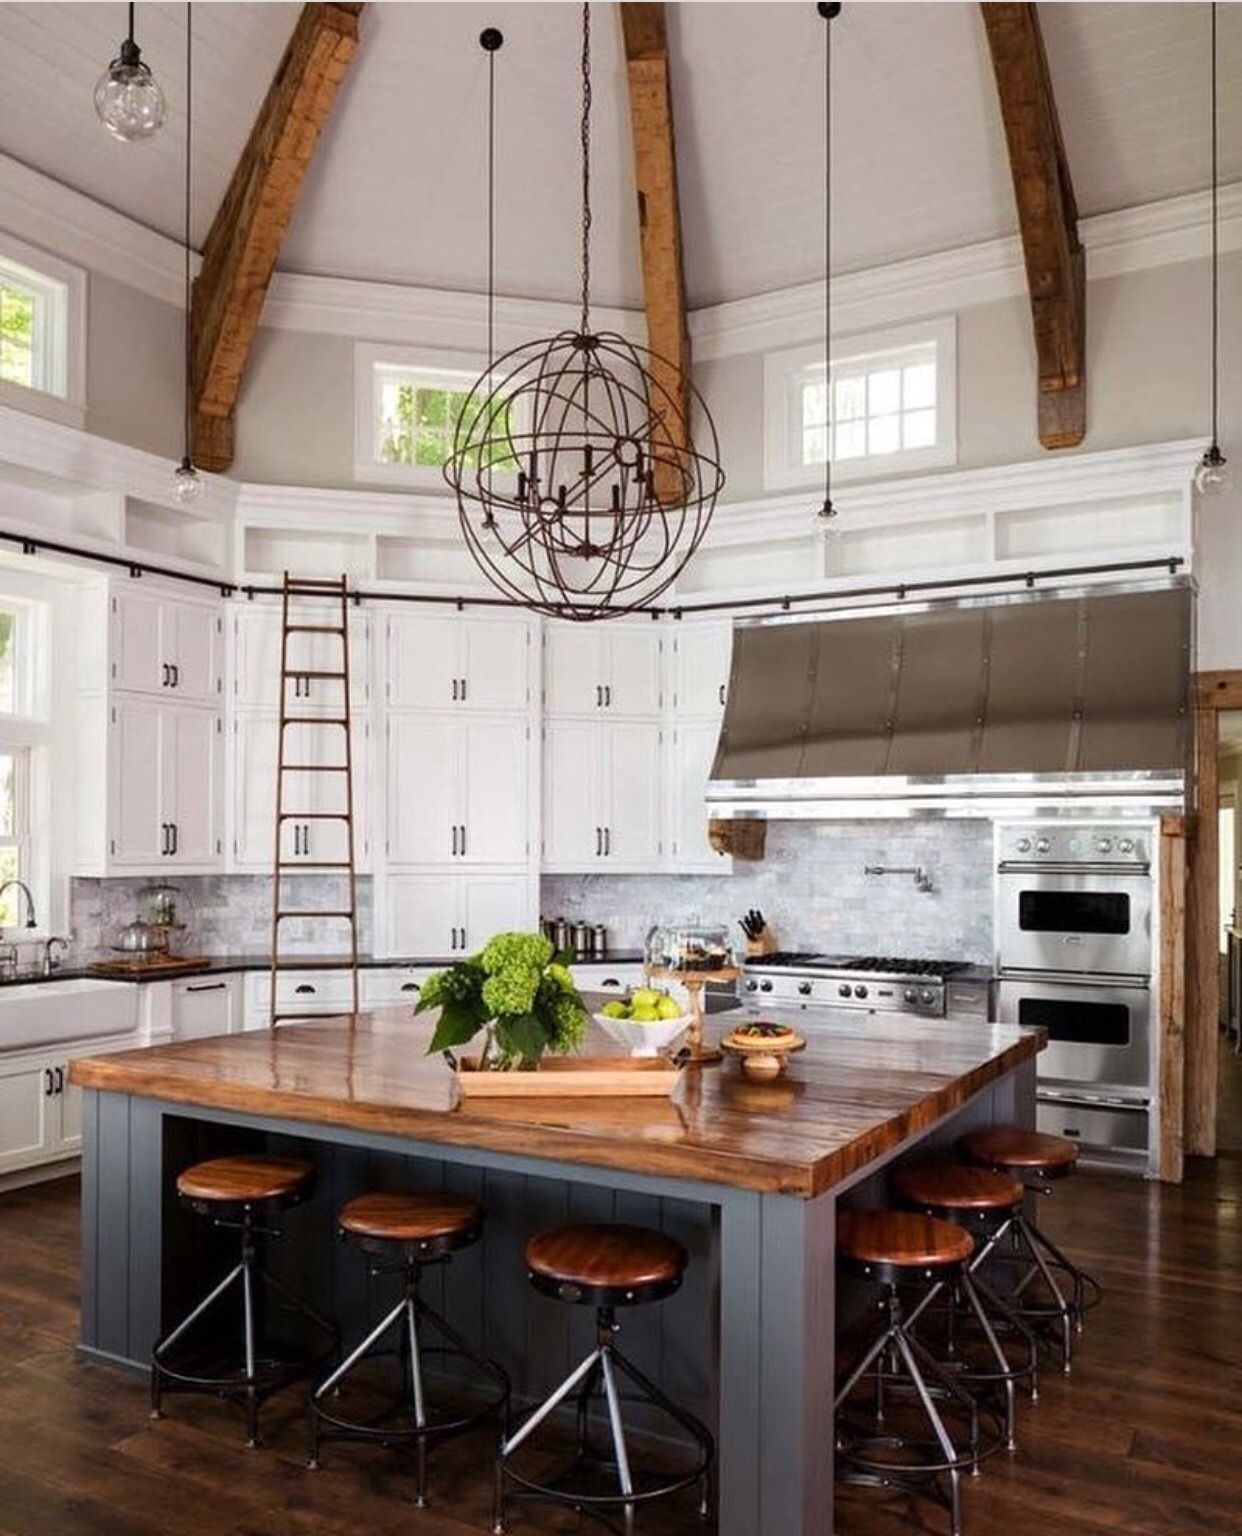 Pin de Craven Hill Capital en Kitchens | Pinterest | Curiosidad ...